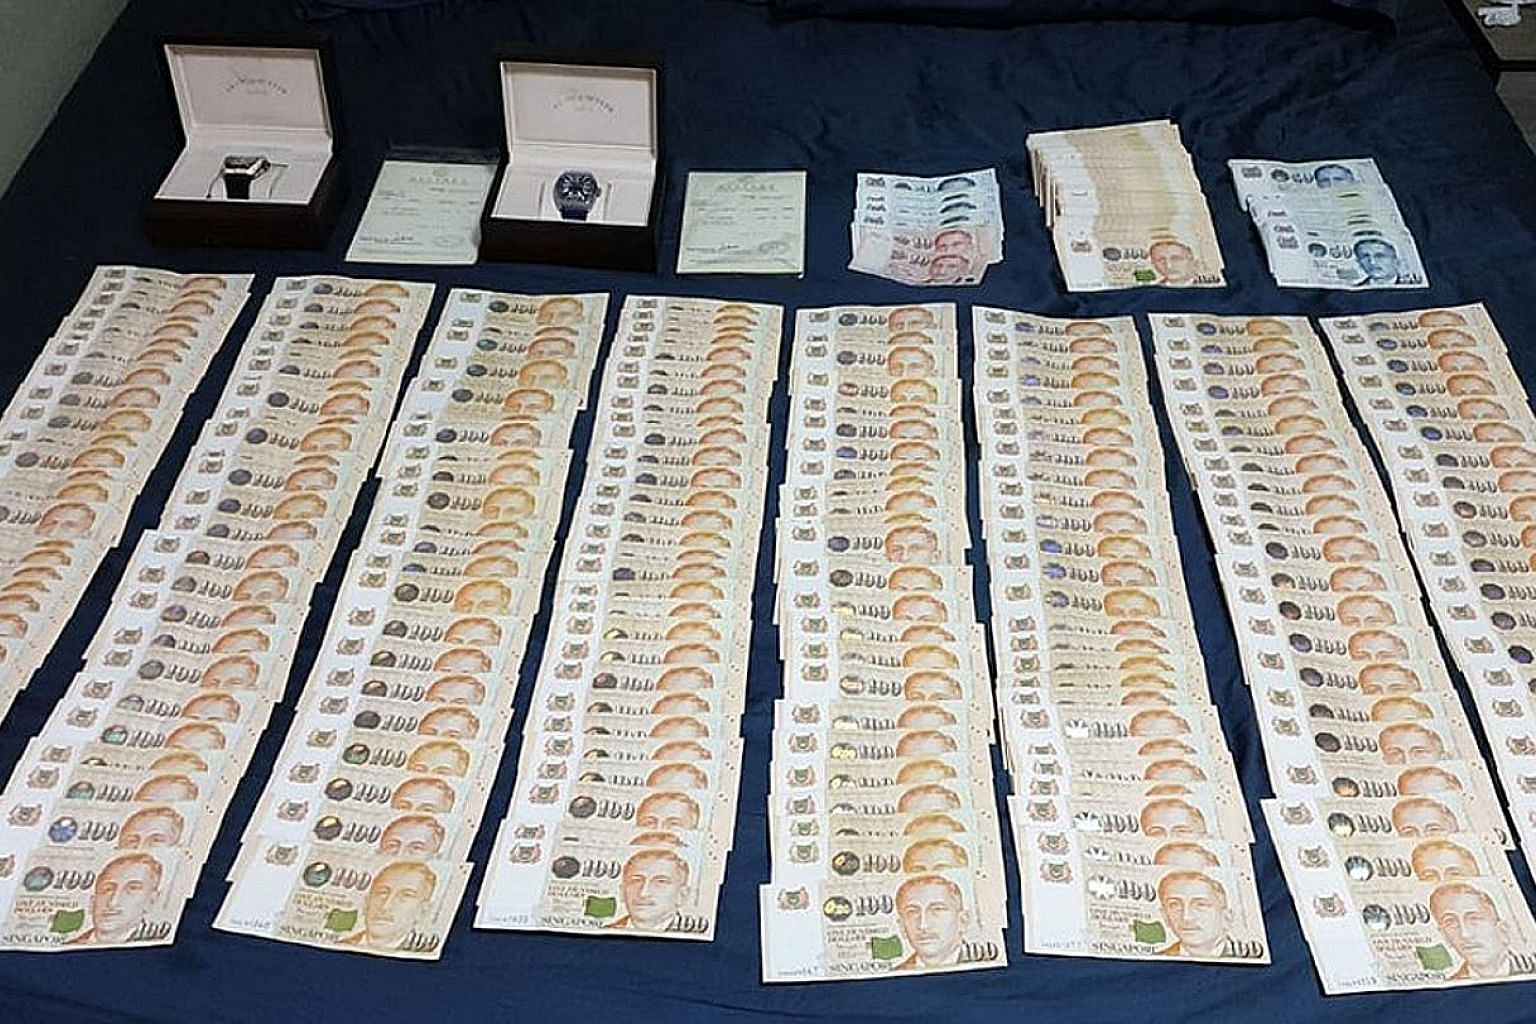 Two watches and more than $81,000 in cash were seized from Chee Jian Rong's home. He allegedly duped a foreign distribution firm.